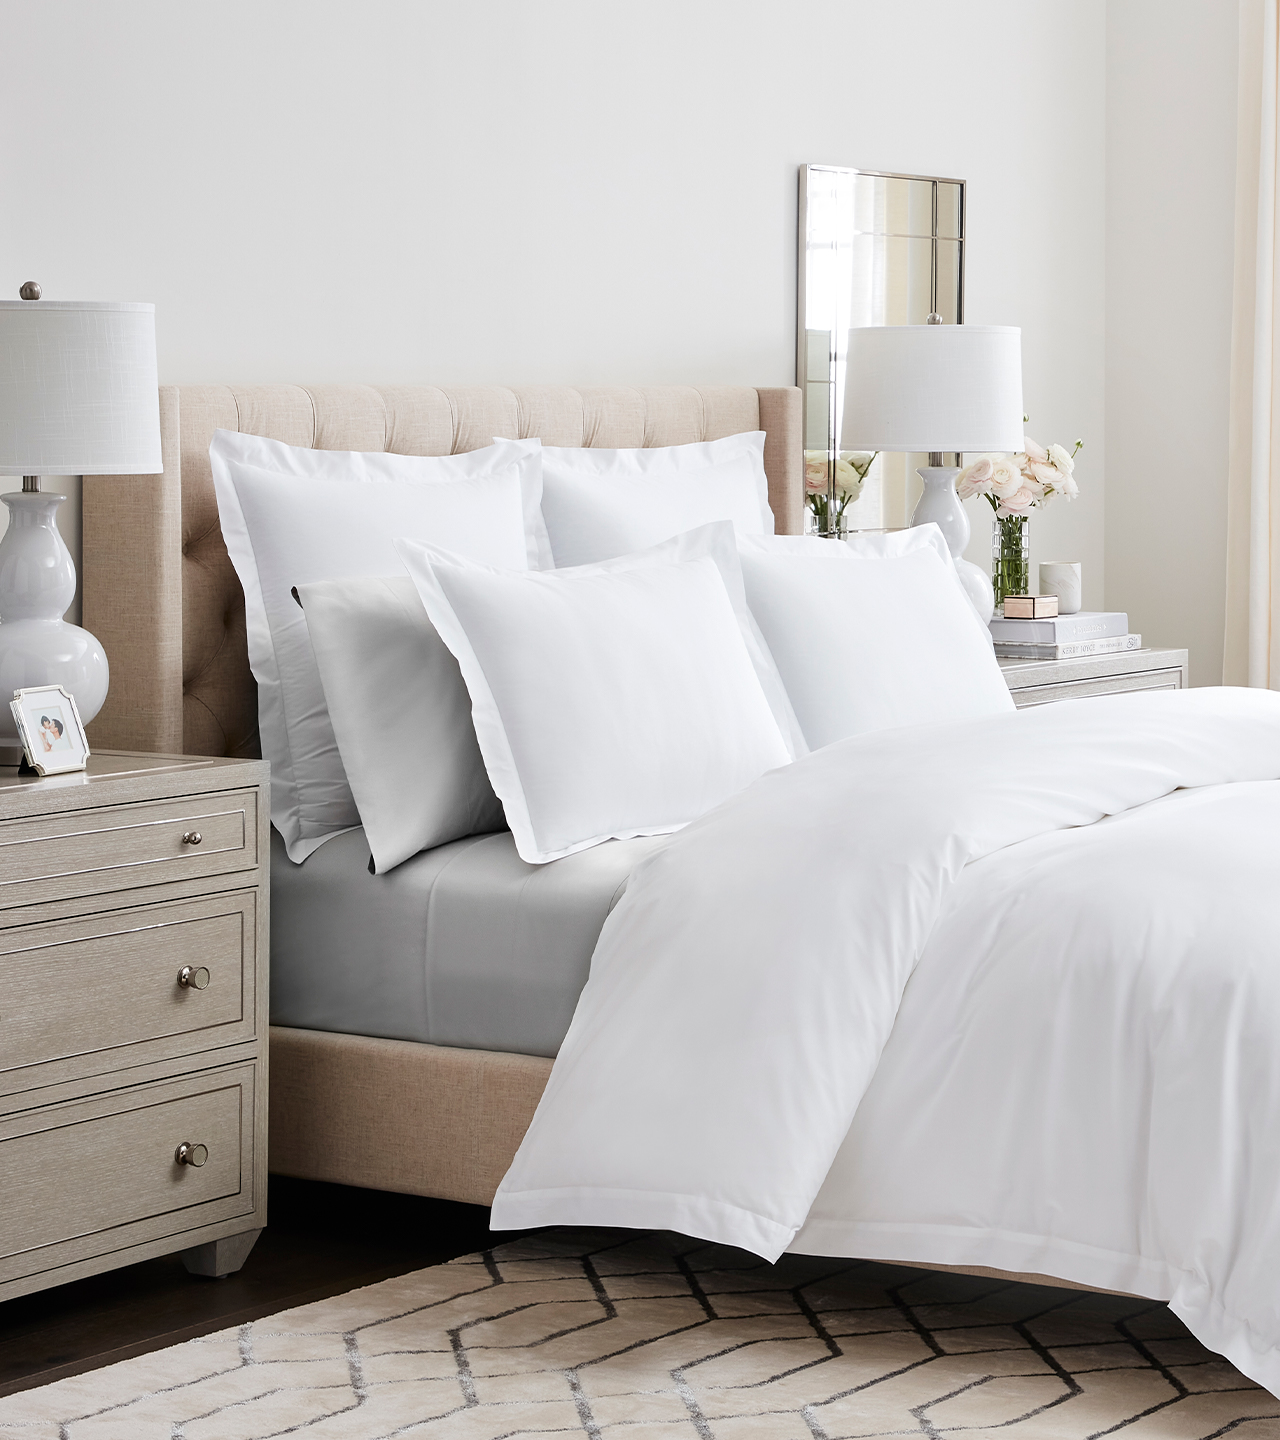 Bed with Percale Tailored Duvet Set in White